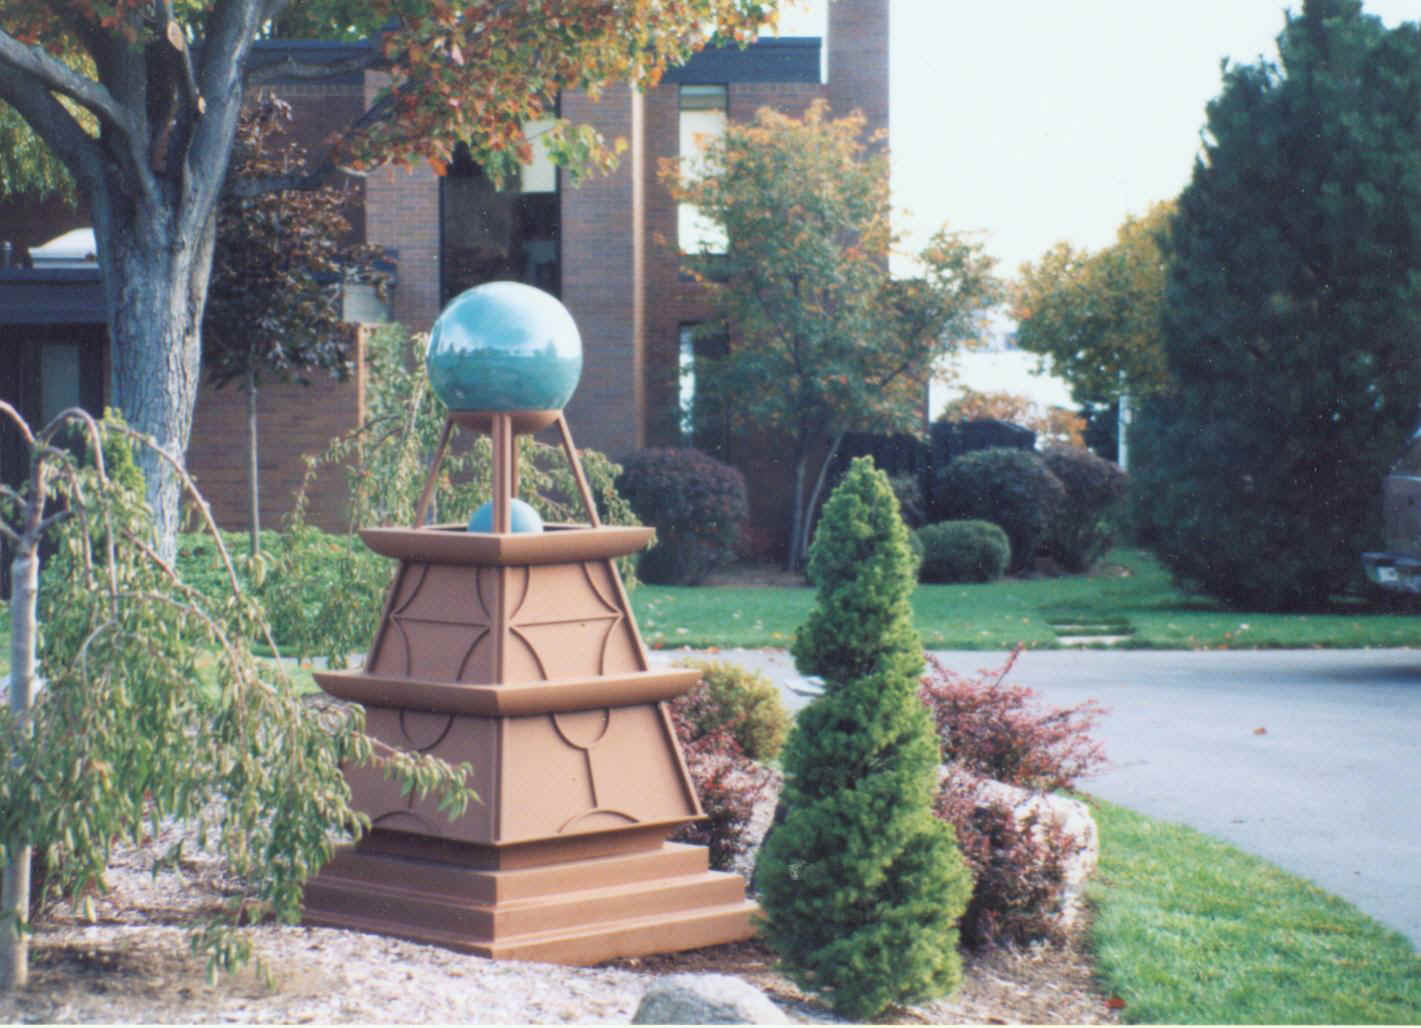 Steel Bell Tower, with ceramic ball